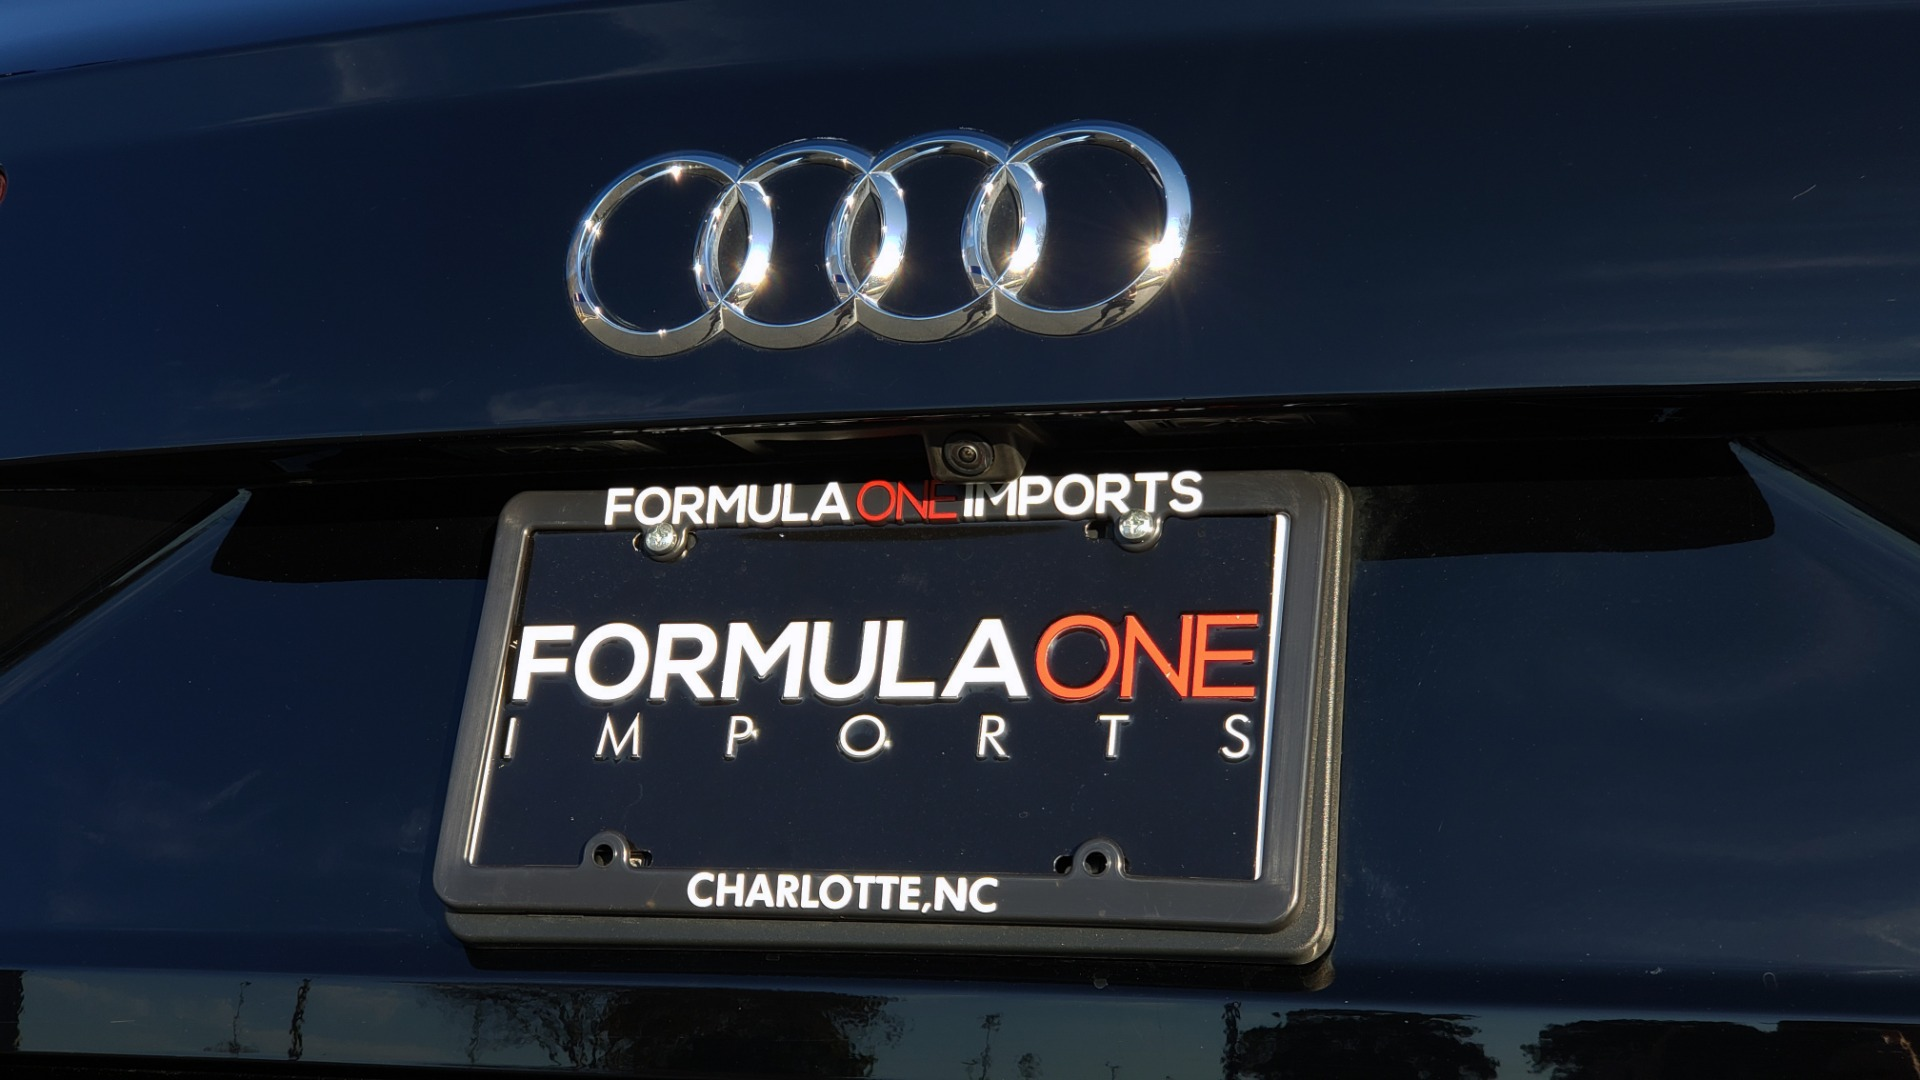 Used 2019 Audi Q7 PREMIUM PLUS / NAV / PANO-ROOF / 3-ROW / REARVIEW for sale Sold at Formula Imports in Charlotte NC 28227 29